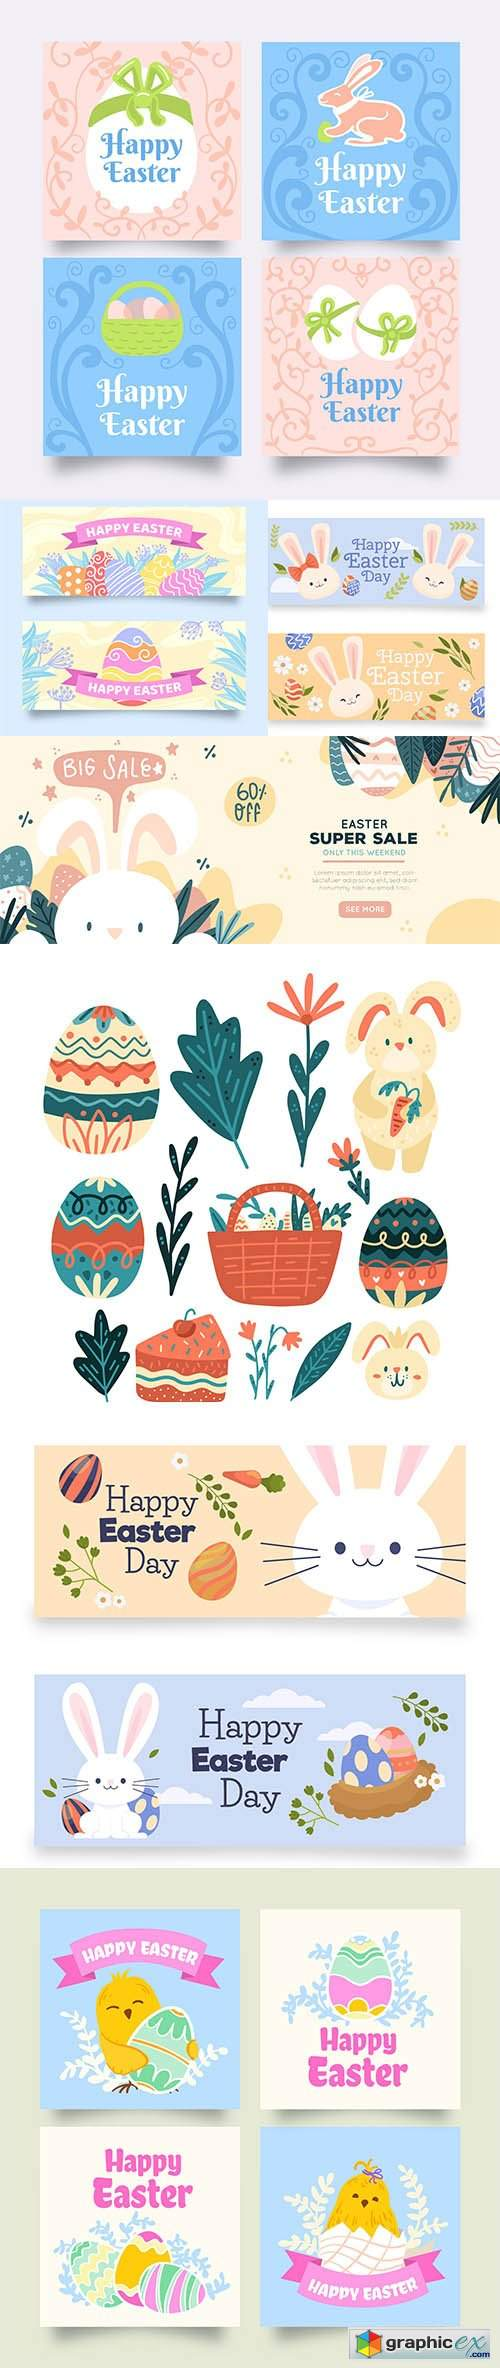 Hand-drawn easter element collection